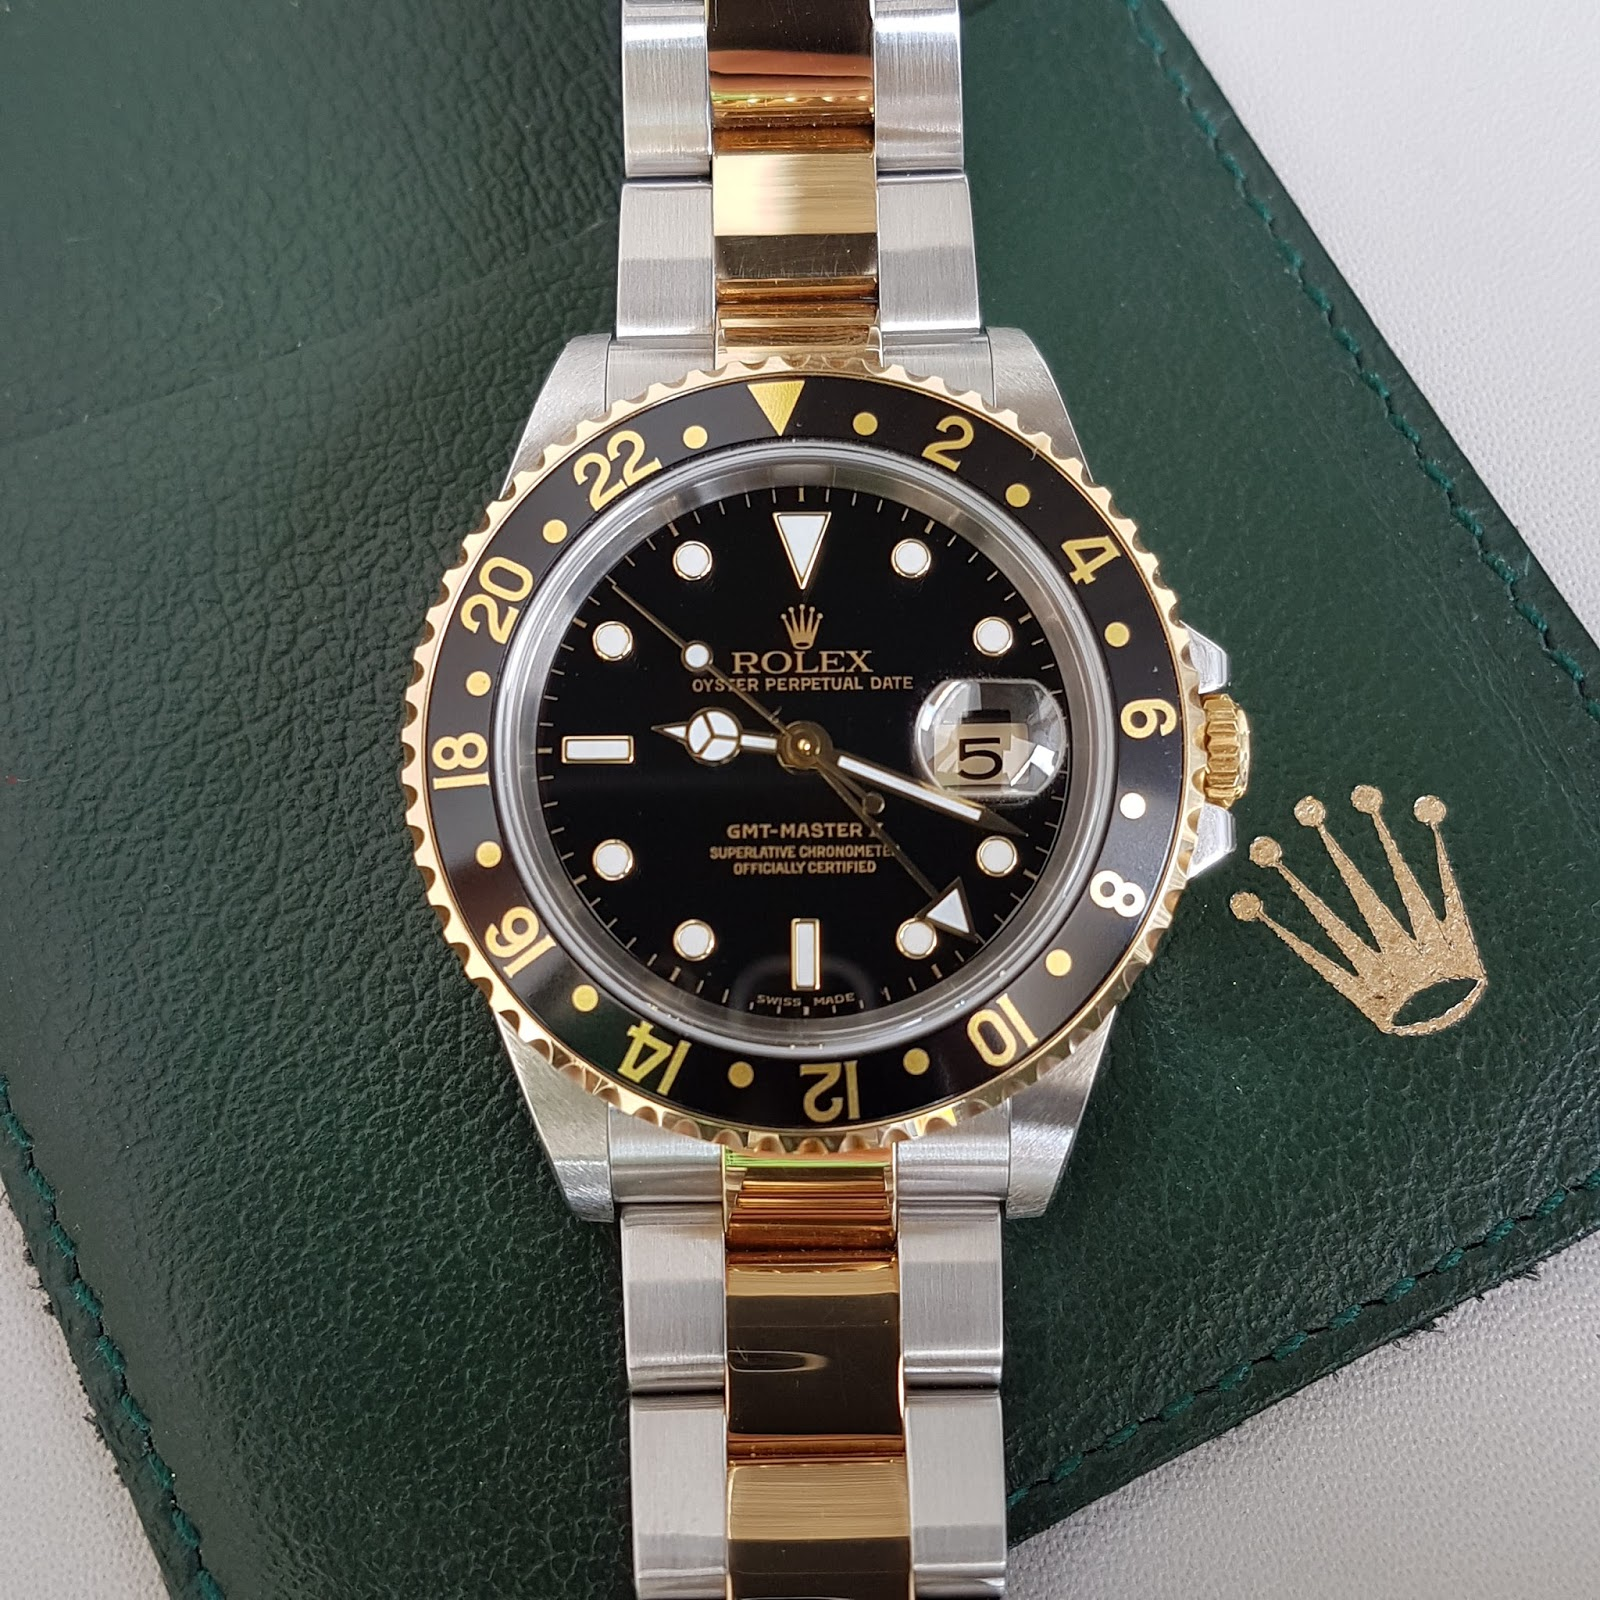 Jual Jam Rolex Gold Original Welcome To Tangan Pria Expedition 6631 Black Yellow Triple Time Bracelet Steel 18k With Deployment Buckle Oyster Model Glass Sapphire Crystal Functions Water